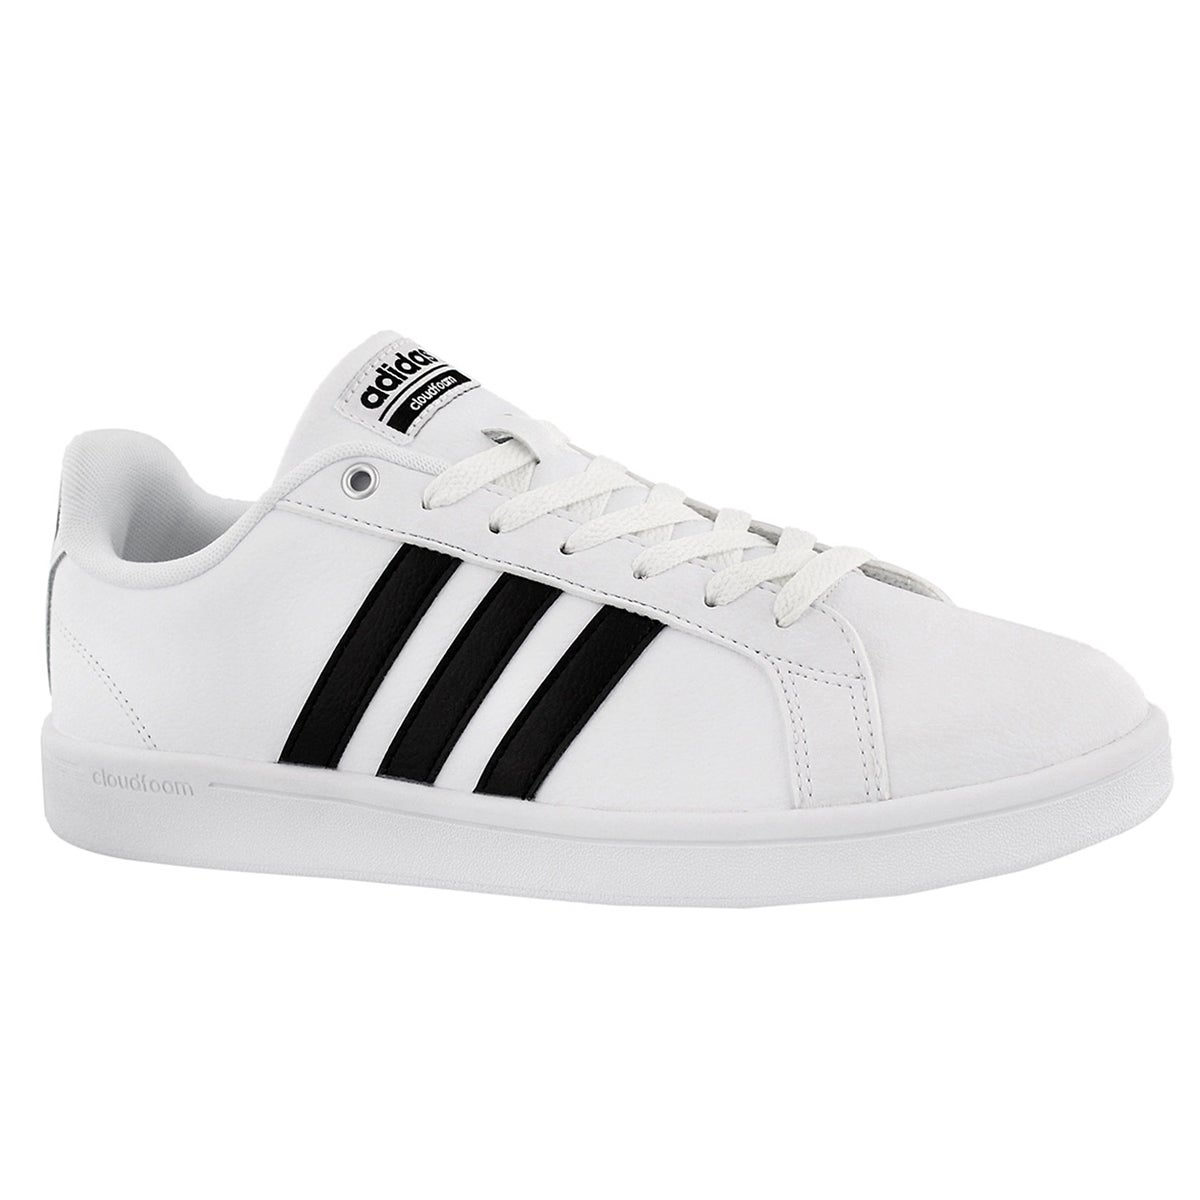 Men's CLOUDFOAM ADVANTAGE wht/blk sneakers